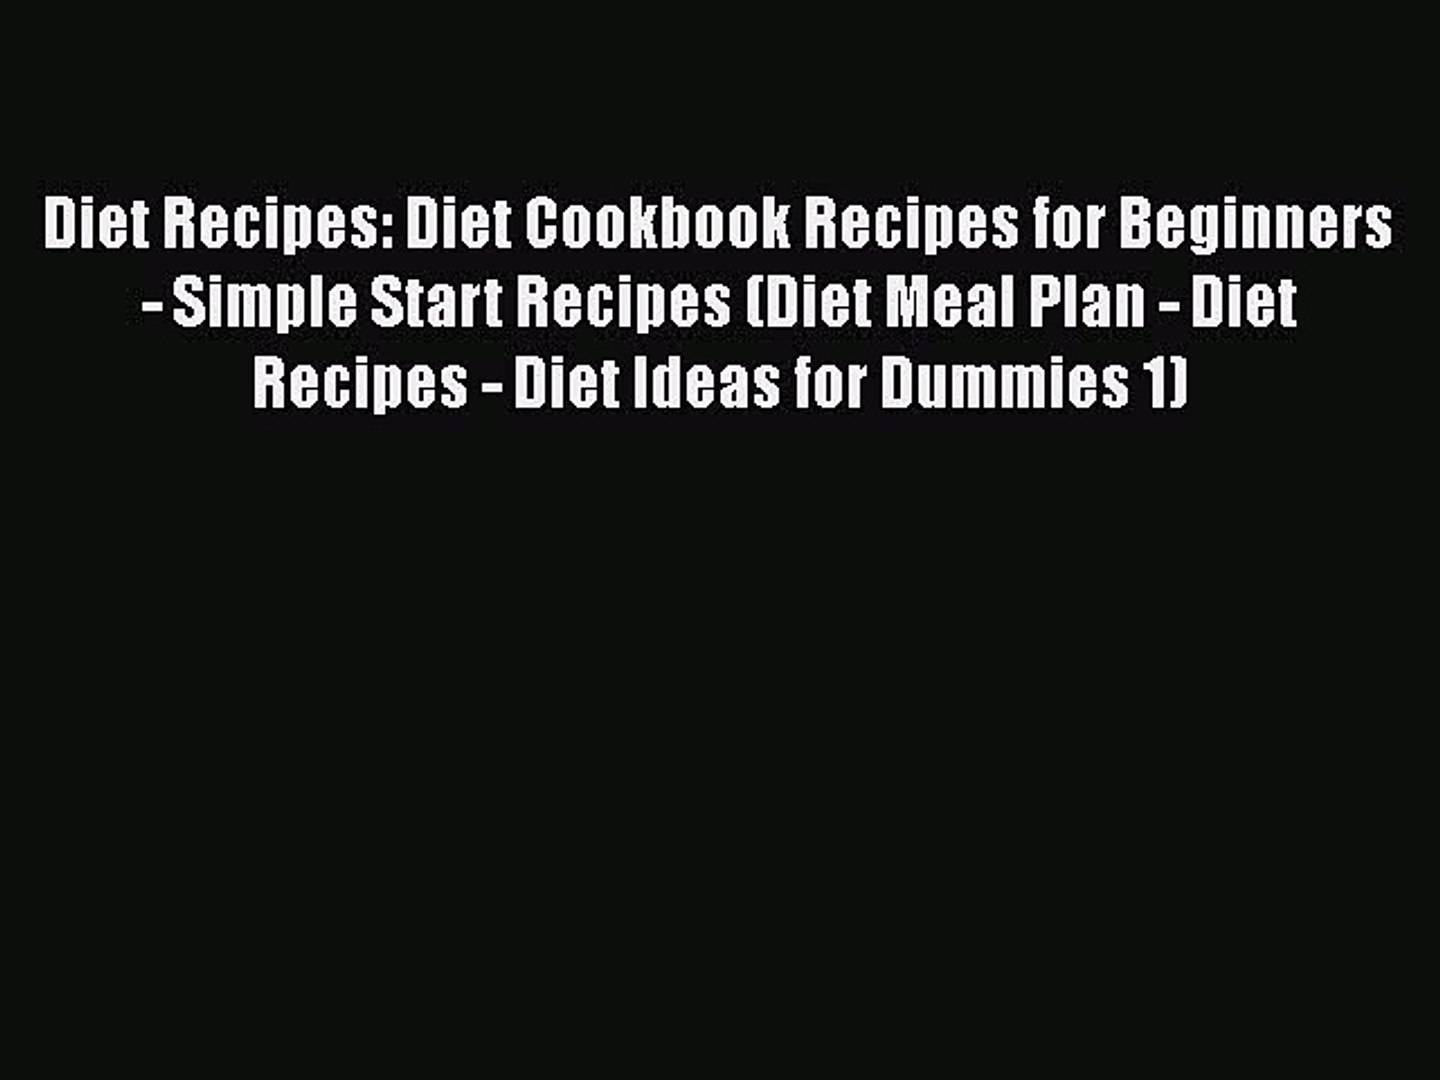 Read Diet Recipes: Diet Cookbook Recipes for Beginners - Simple Start Recipes (Diet Meal Plan